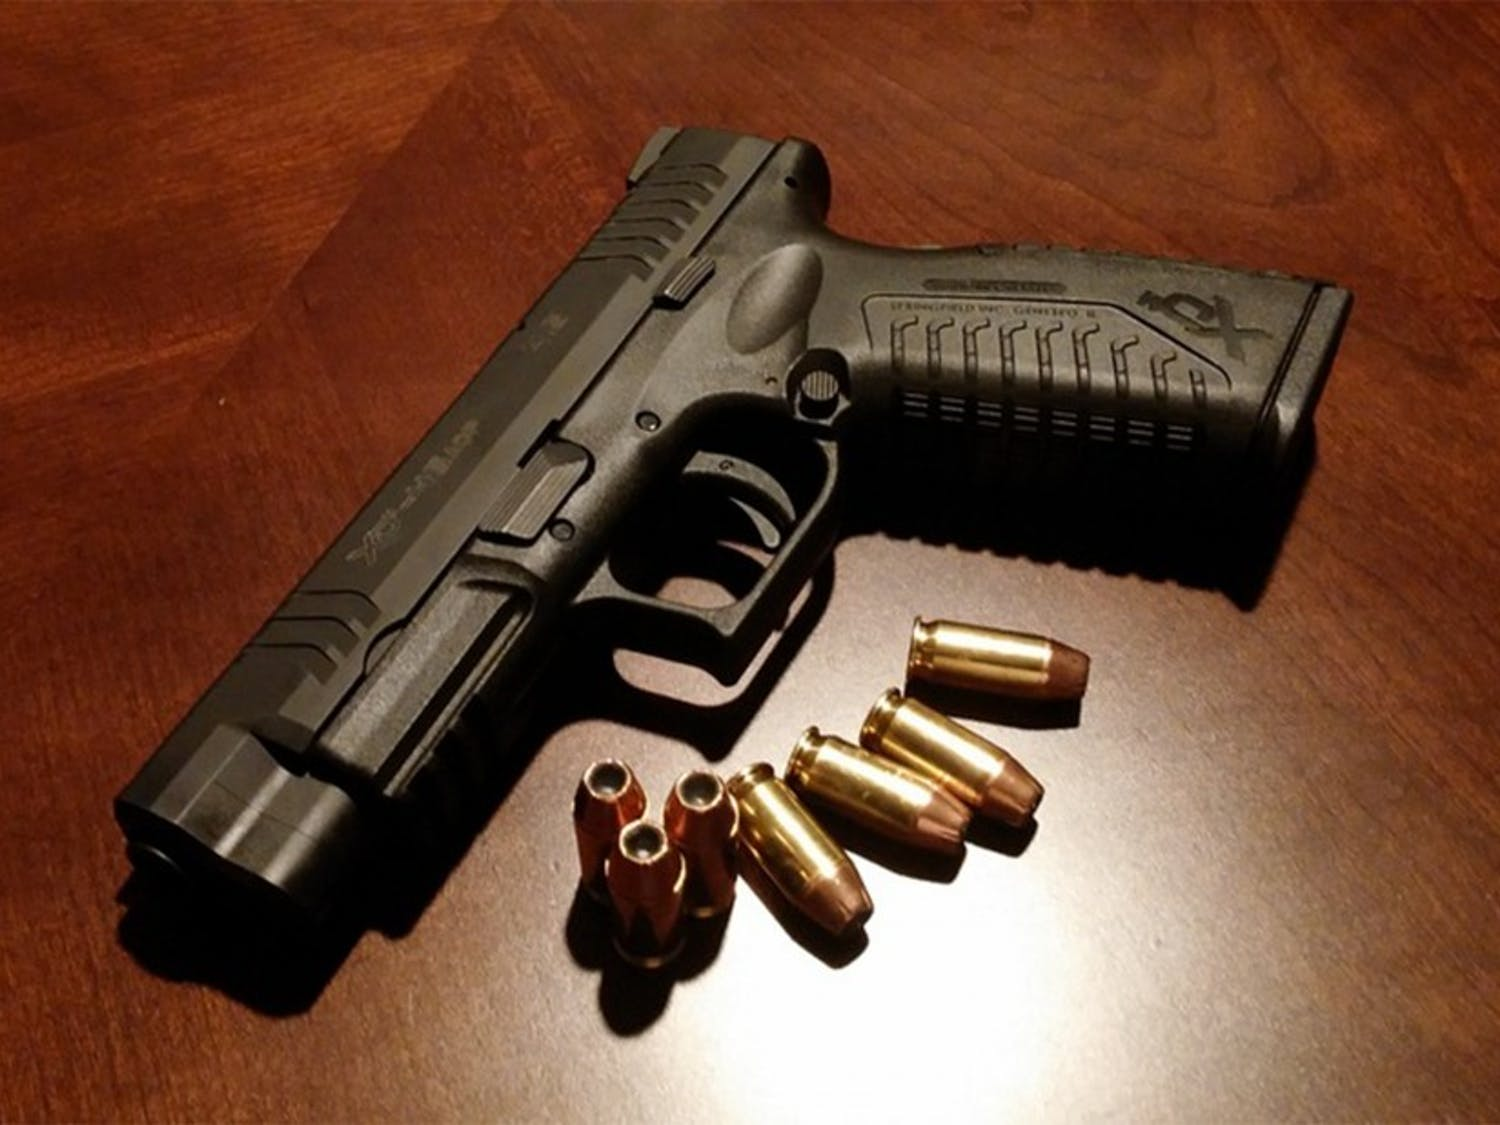 The study found that theimplementation of gun removal laws in Connecticut was correlated with a reduced likelihood of suicide.